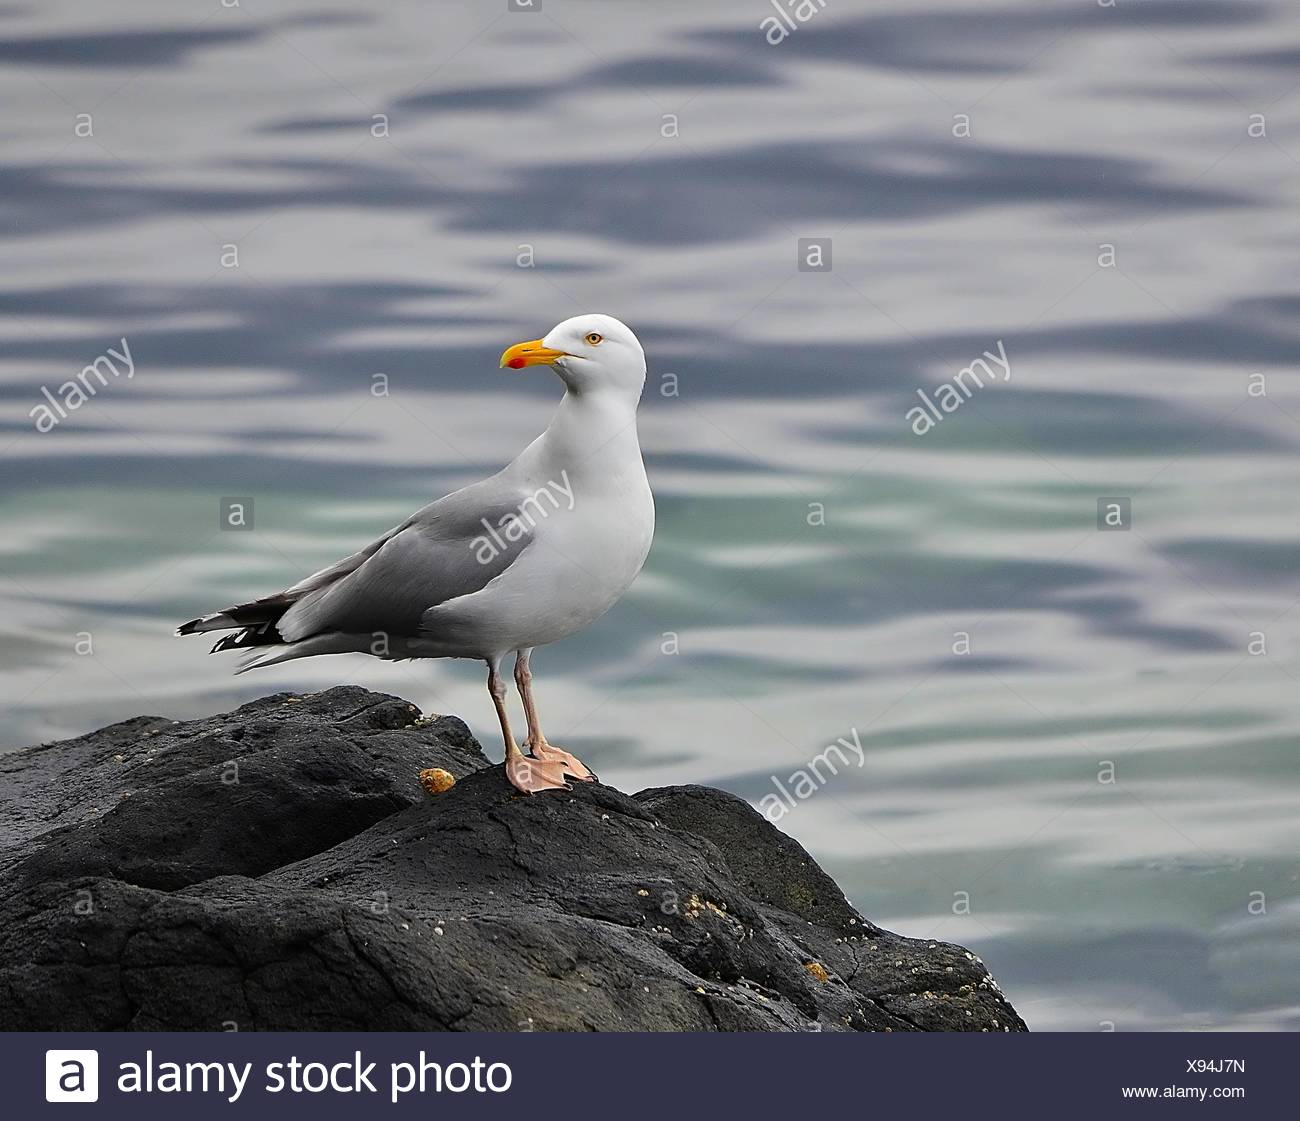 Seagull Perches On Rock Against Sea - Stock Image